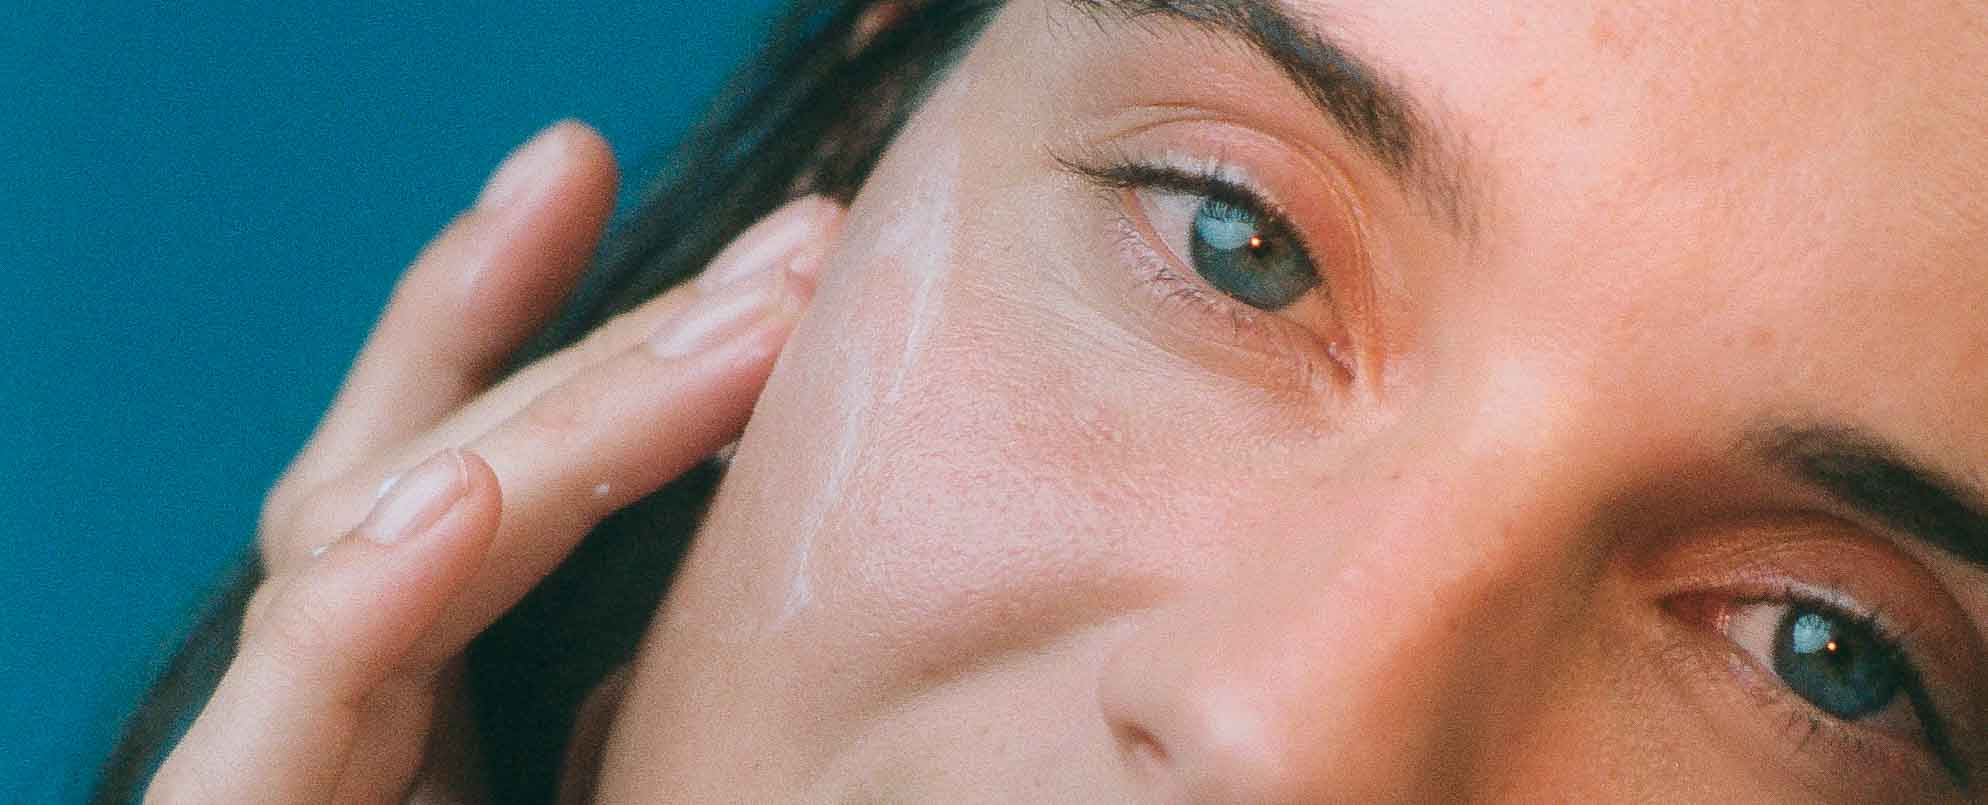 Lysine for Acne: Does It Help?